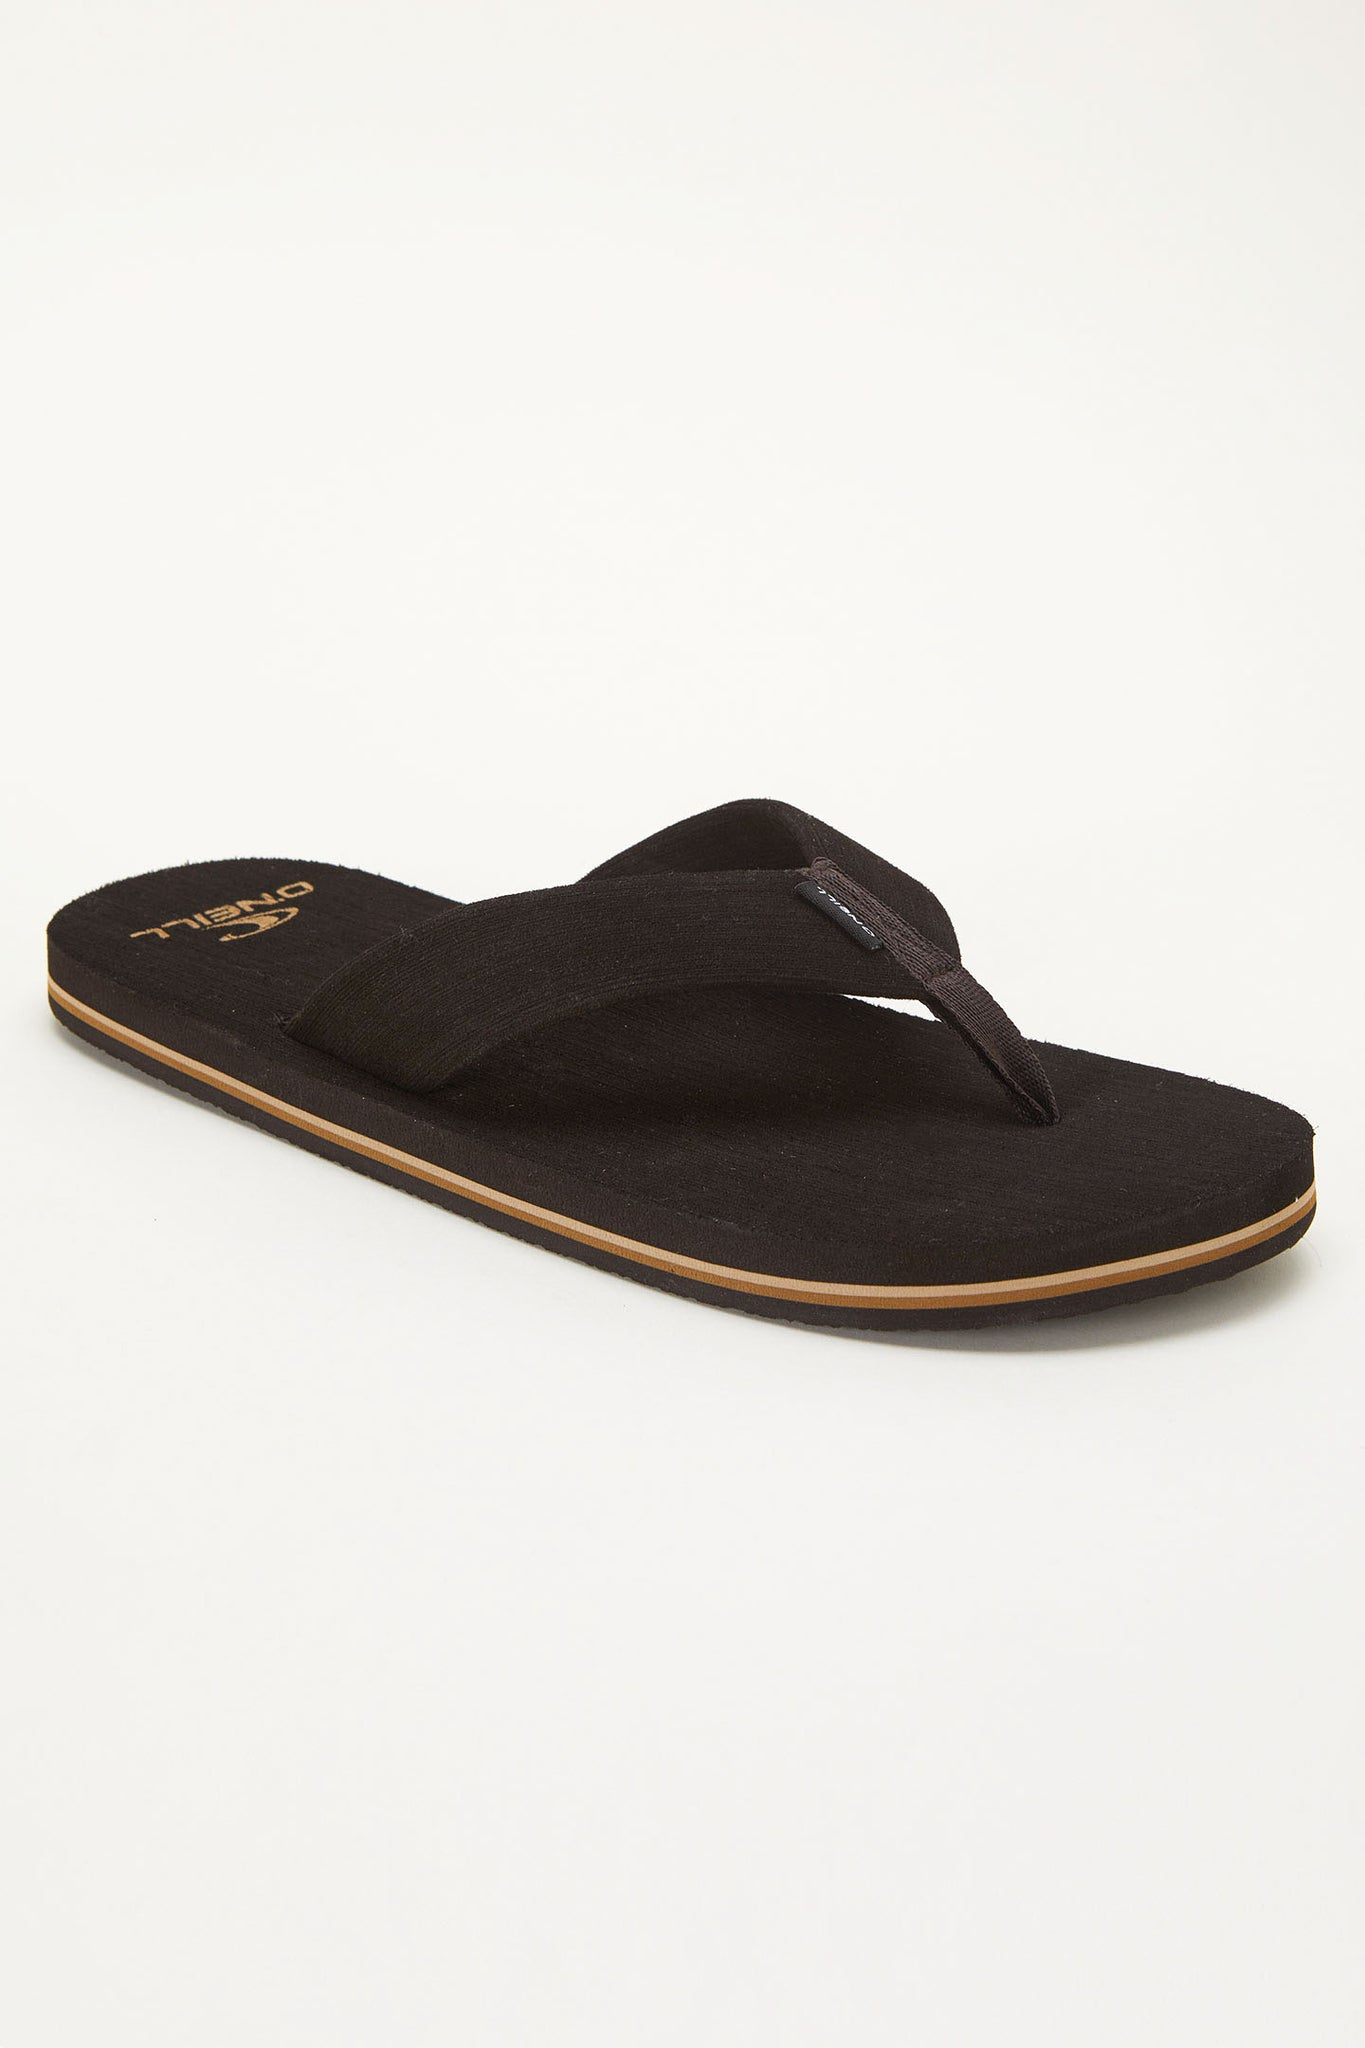 Phluff Daddy Sandals - Dark Brown | O'Neill